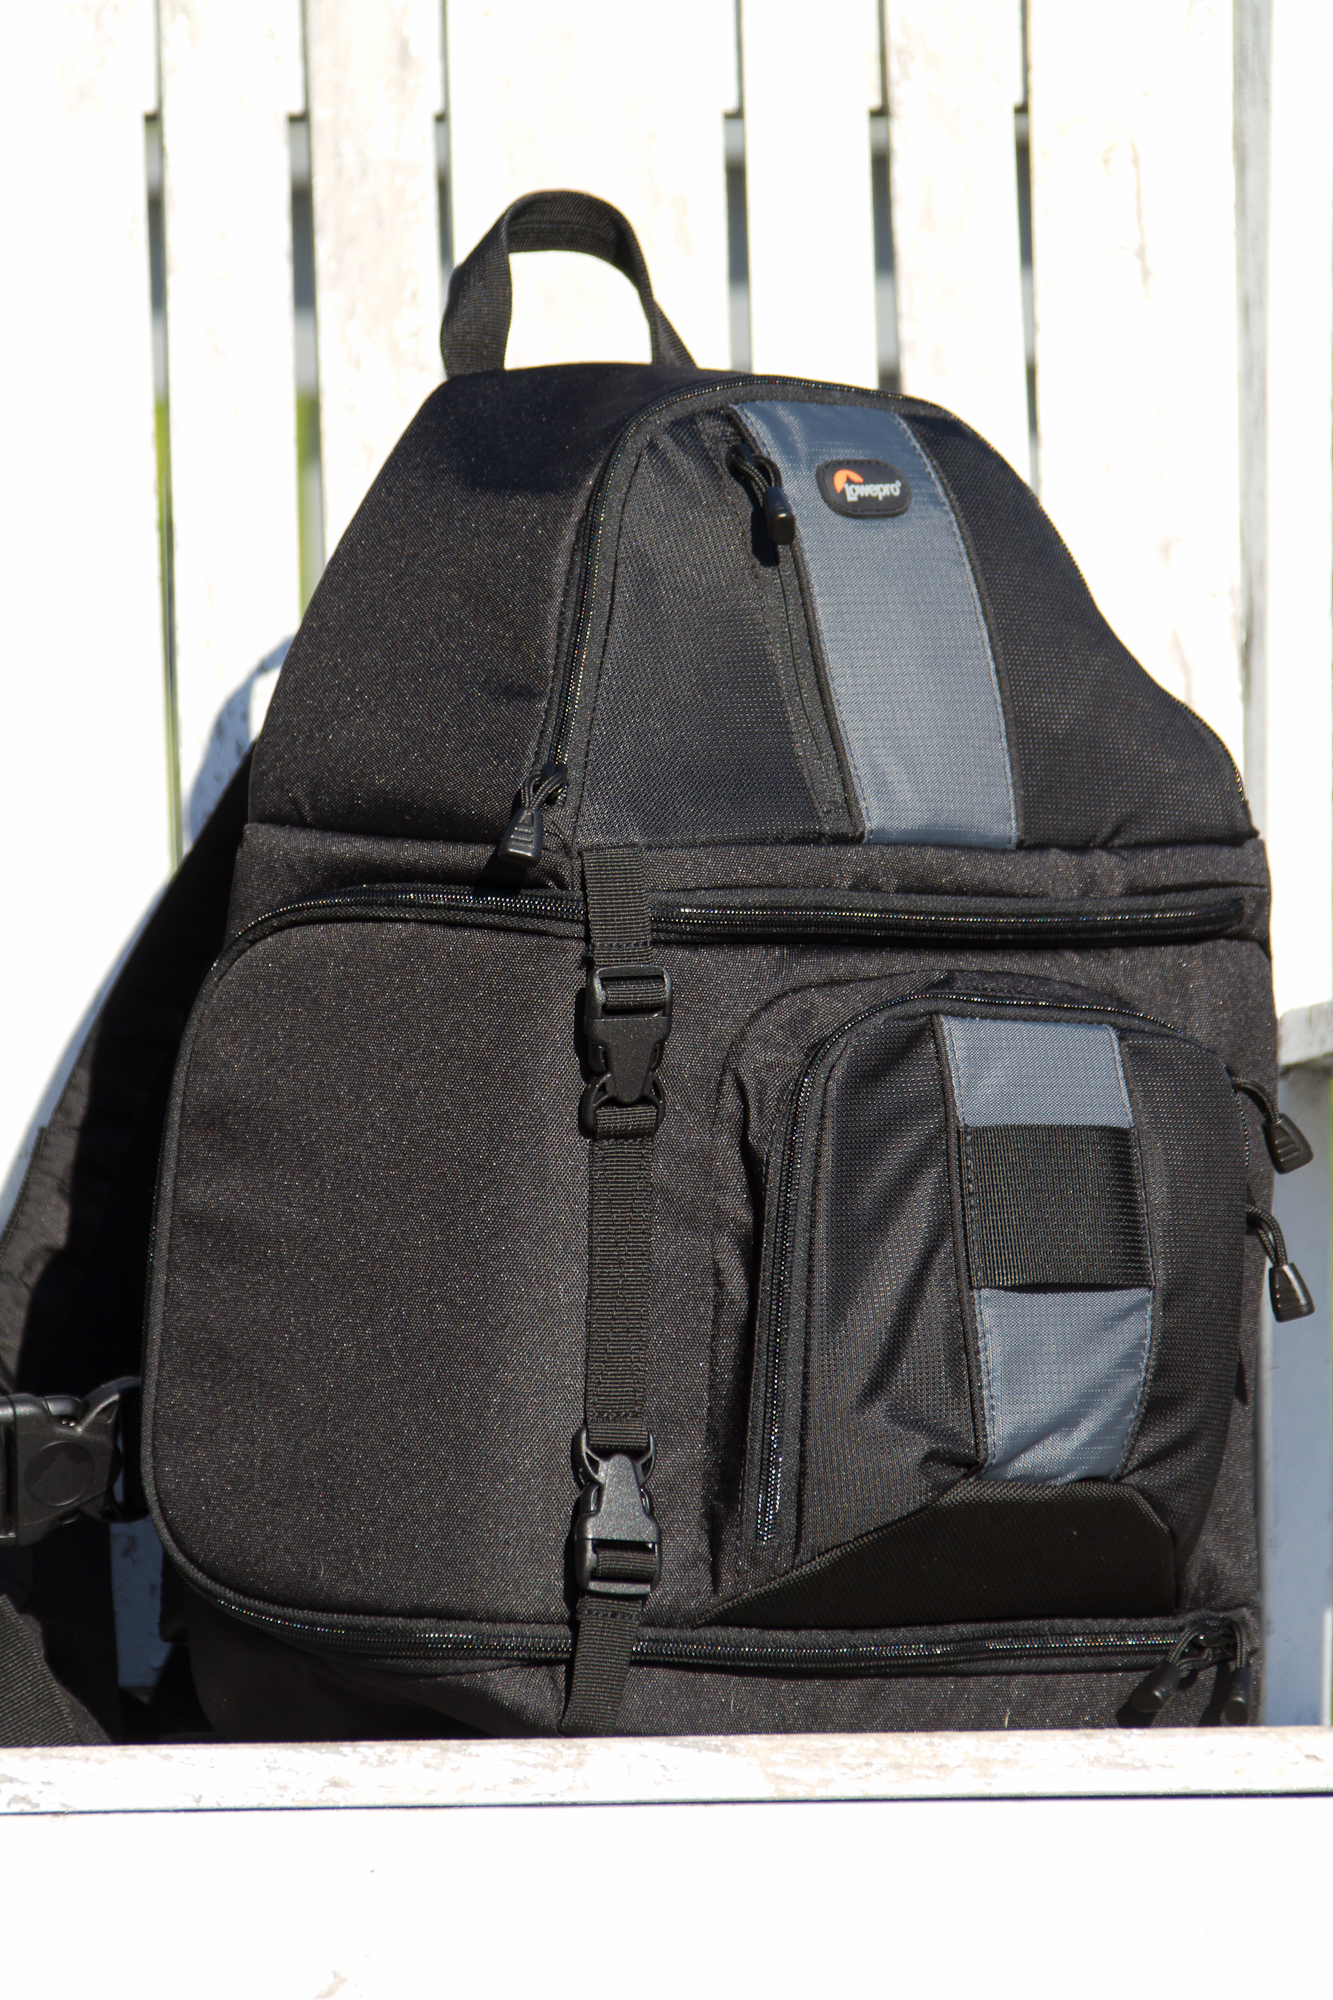 Lowepro Slingshot 302 Aw Camera Bag Review Dslr Video Pack 250aw The Fits A Niche In Photo Market Specifically For Quick Outings With Essential Gear This Is One Of Three Line